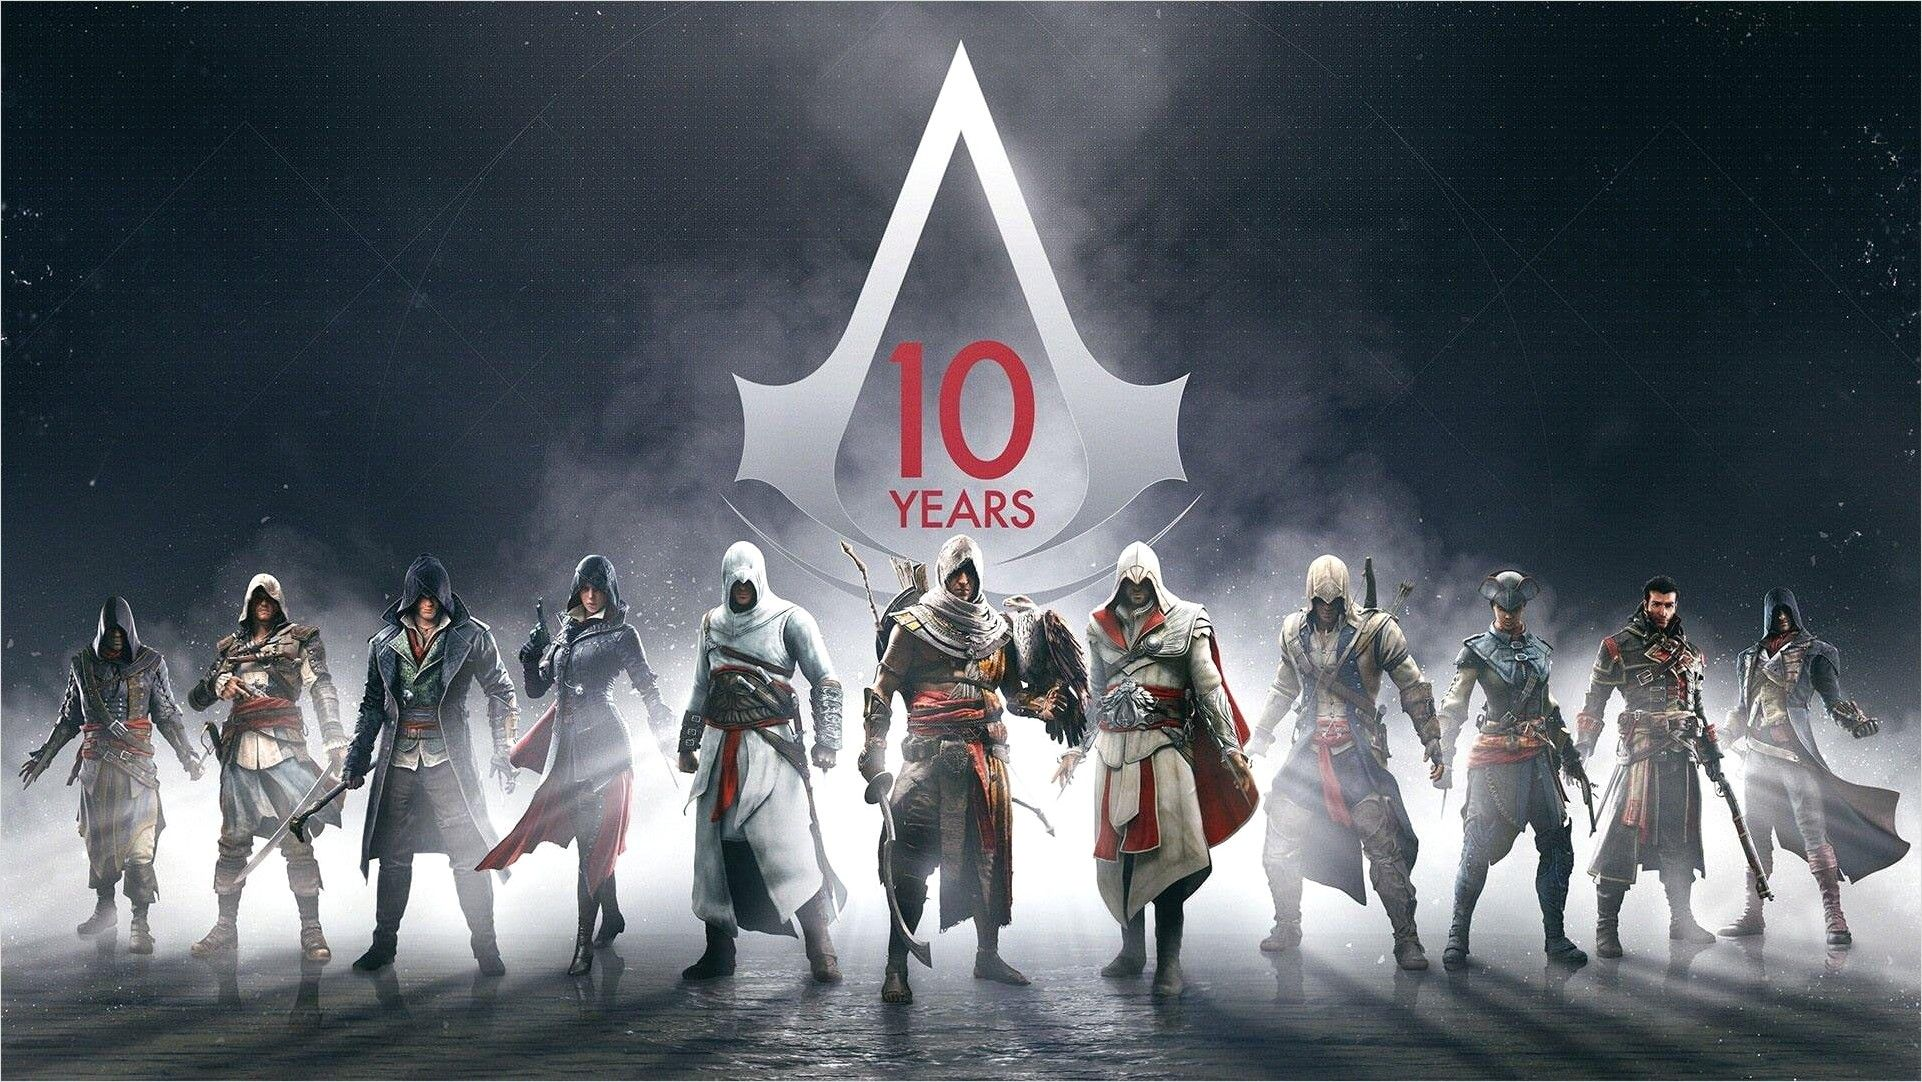 4k Wallpaper Assassins Creed All Characters In 2020 Assassins